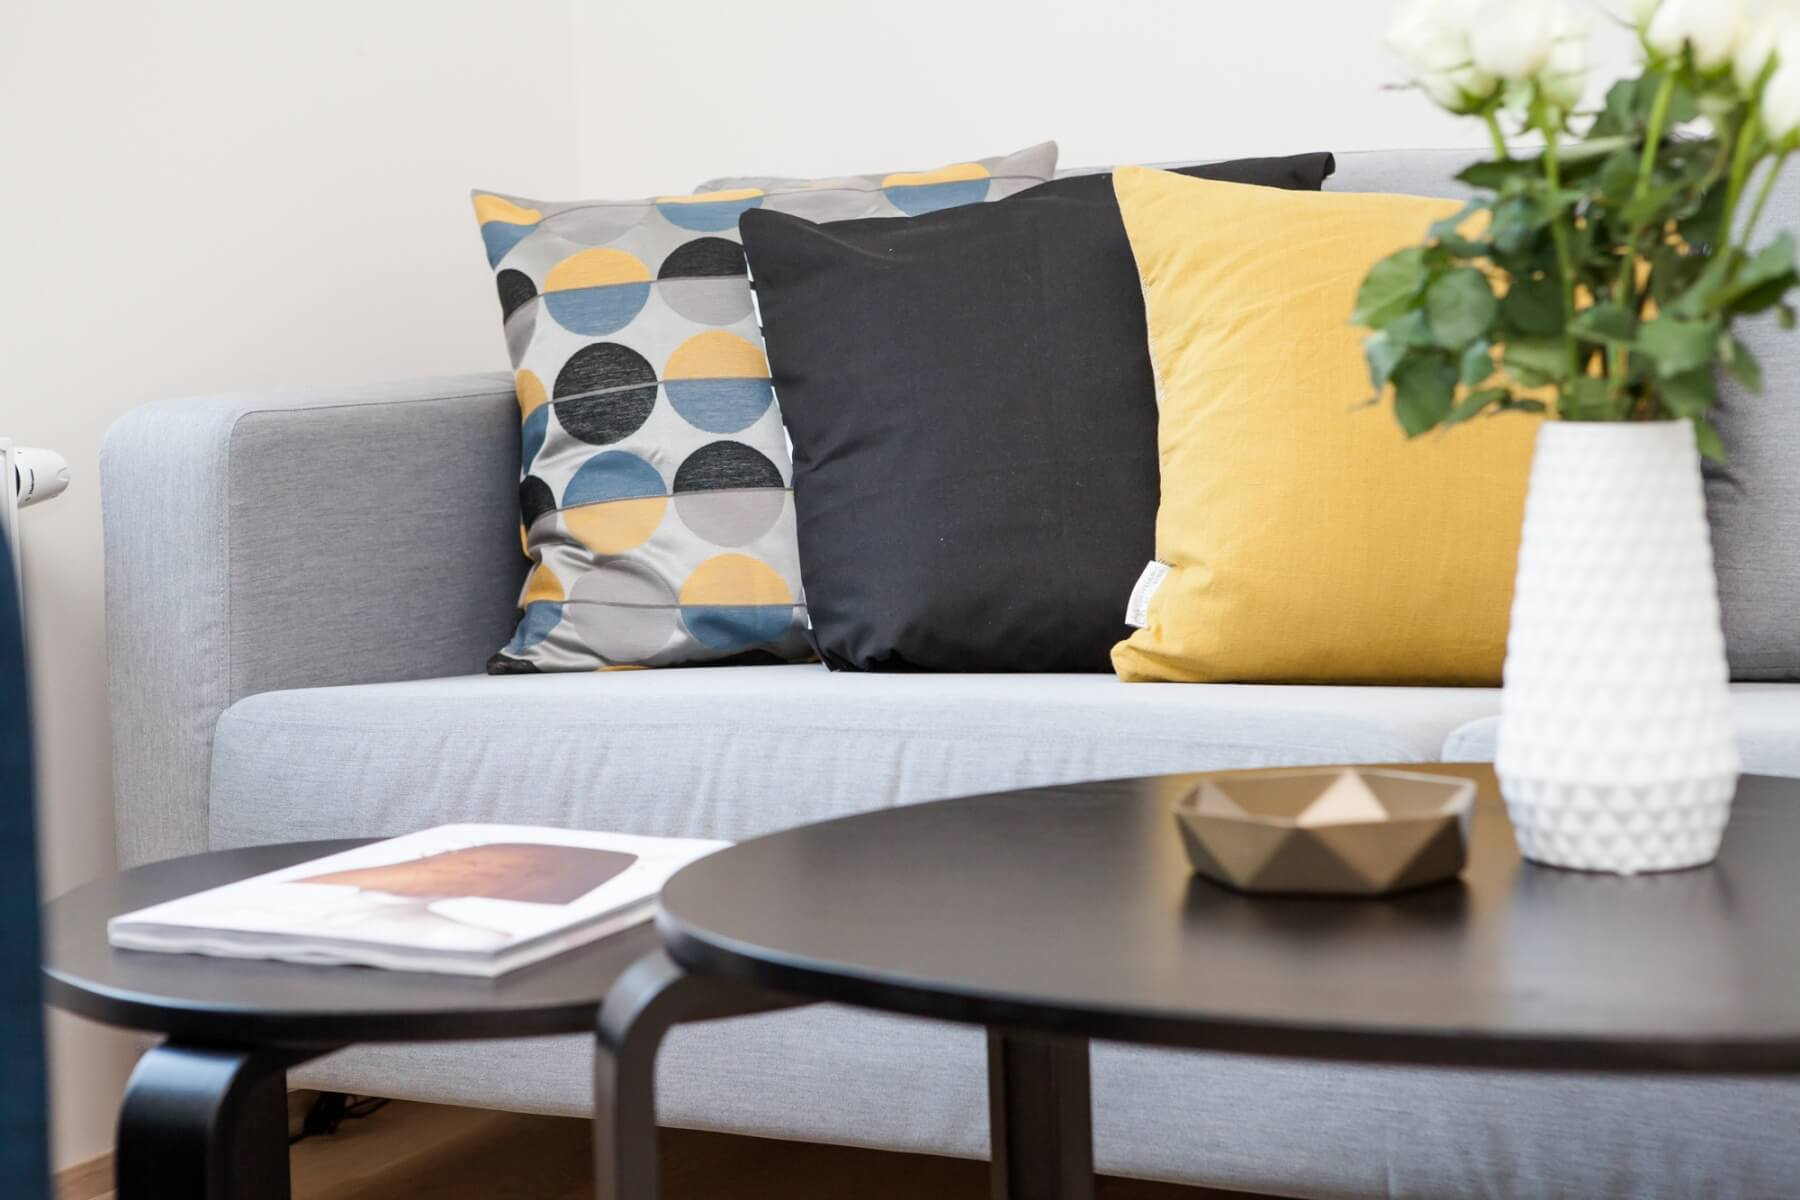 Colorful pillows on a living room couch. Photo credit: Terje Sollie